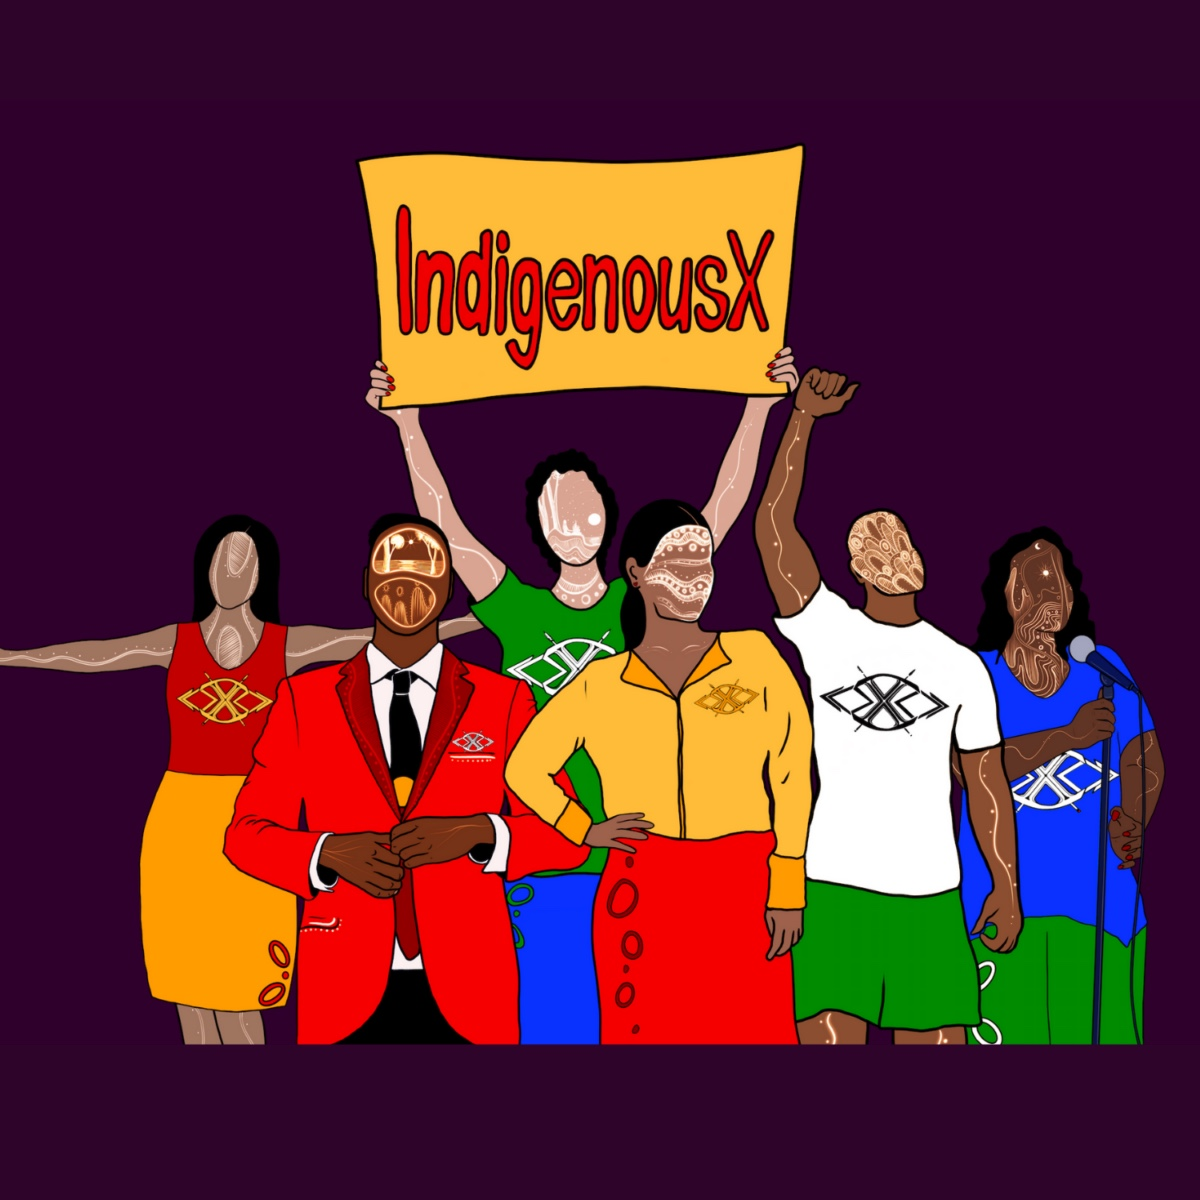 IndigenousX cartoon people holding sign